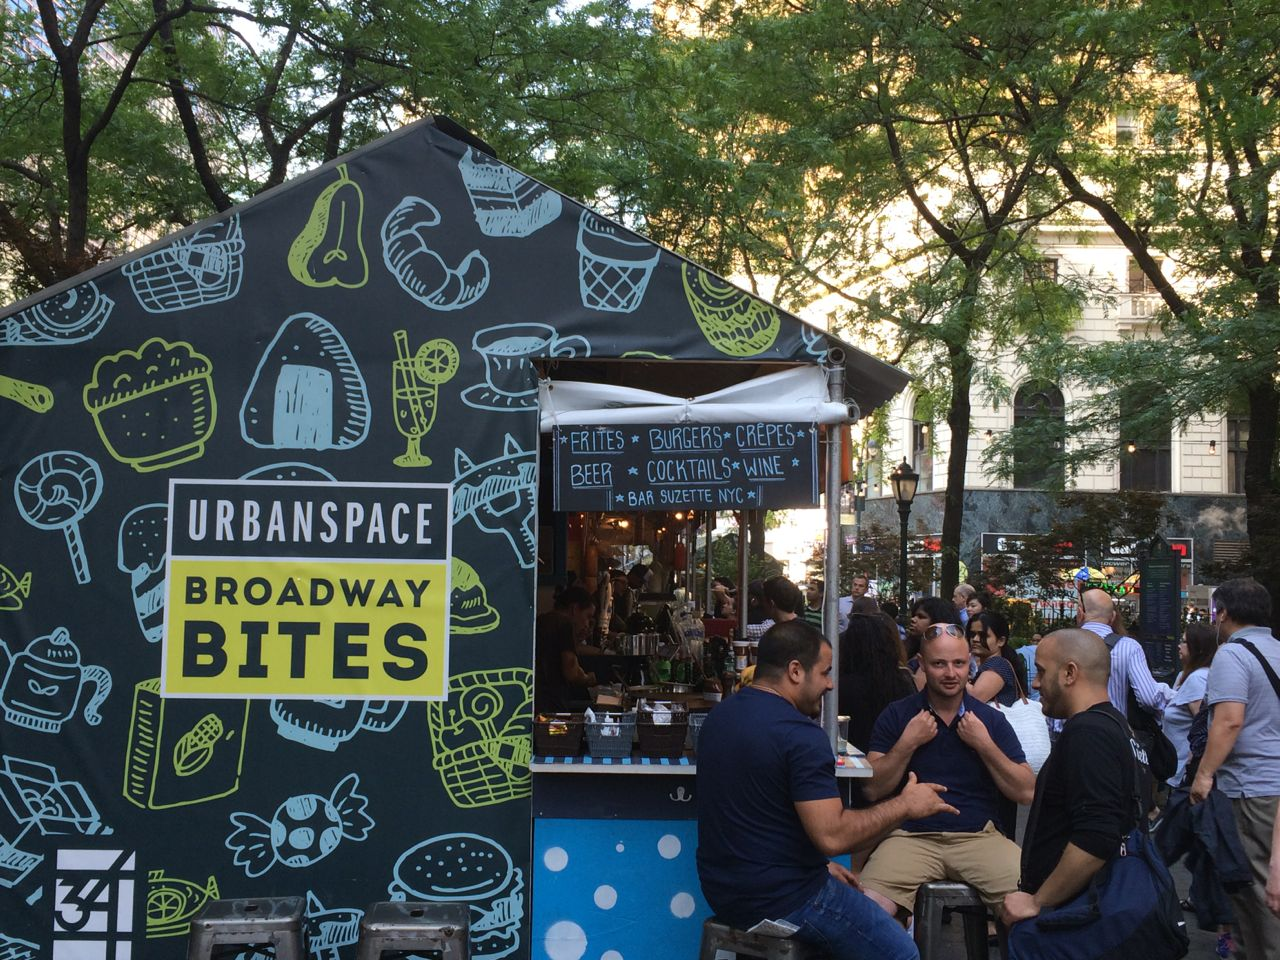 Broadway Bites is a fun event for food lovers.